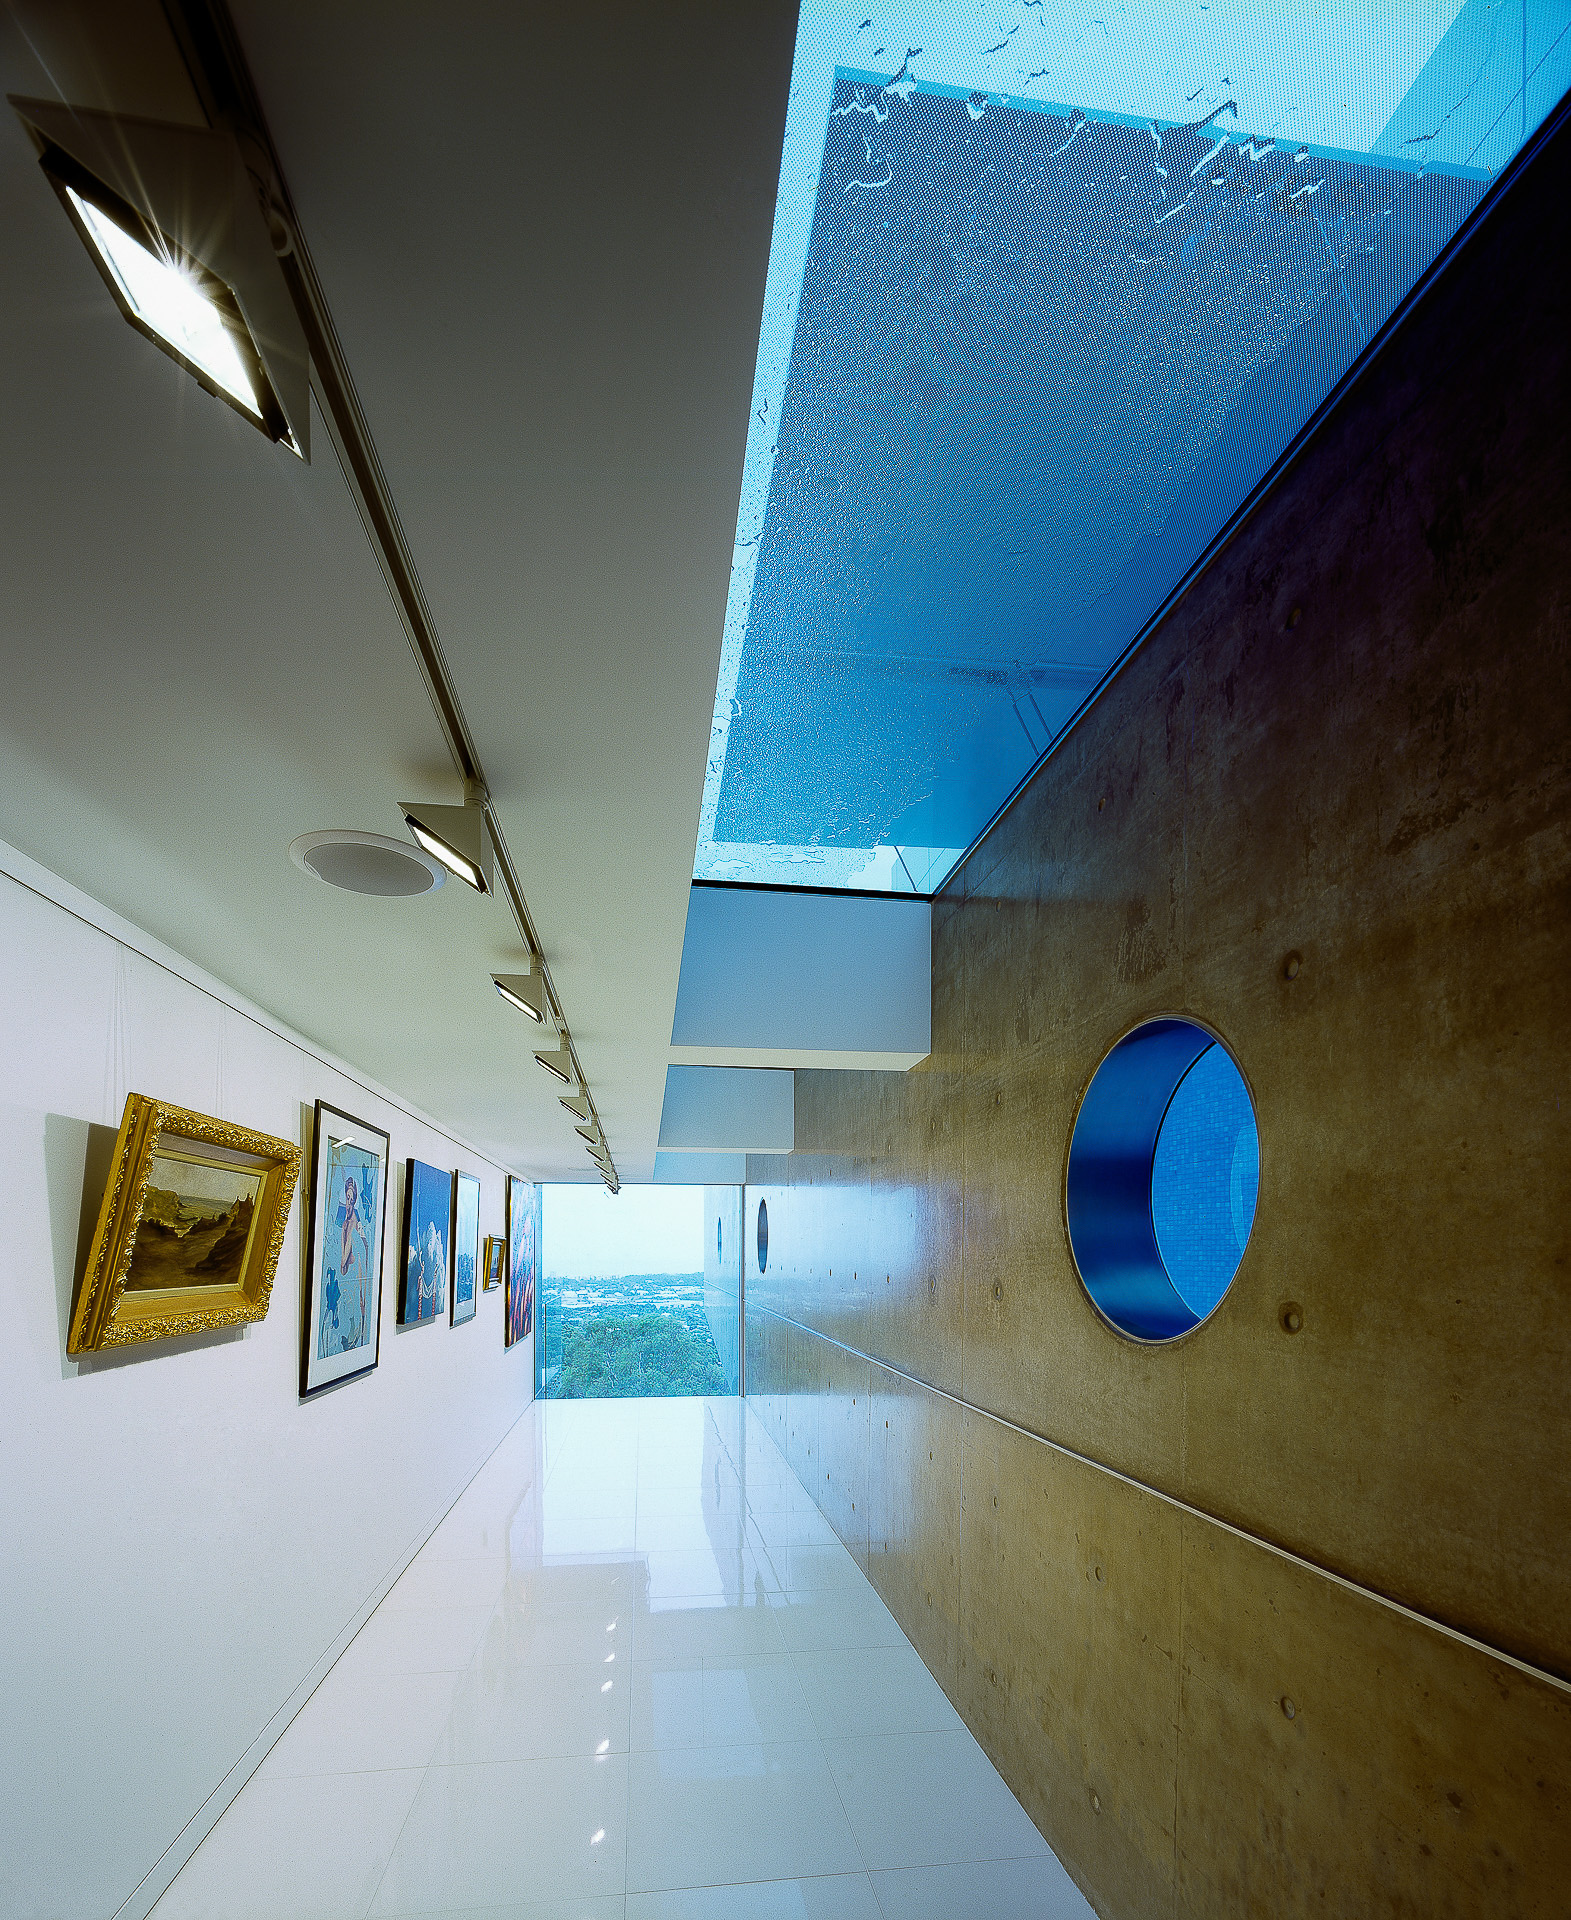 art room, art show, minimal, polished concrete walls, port hole, futuristic, minka joinery